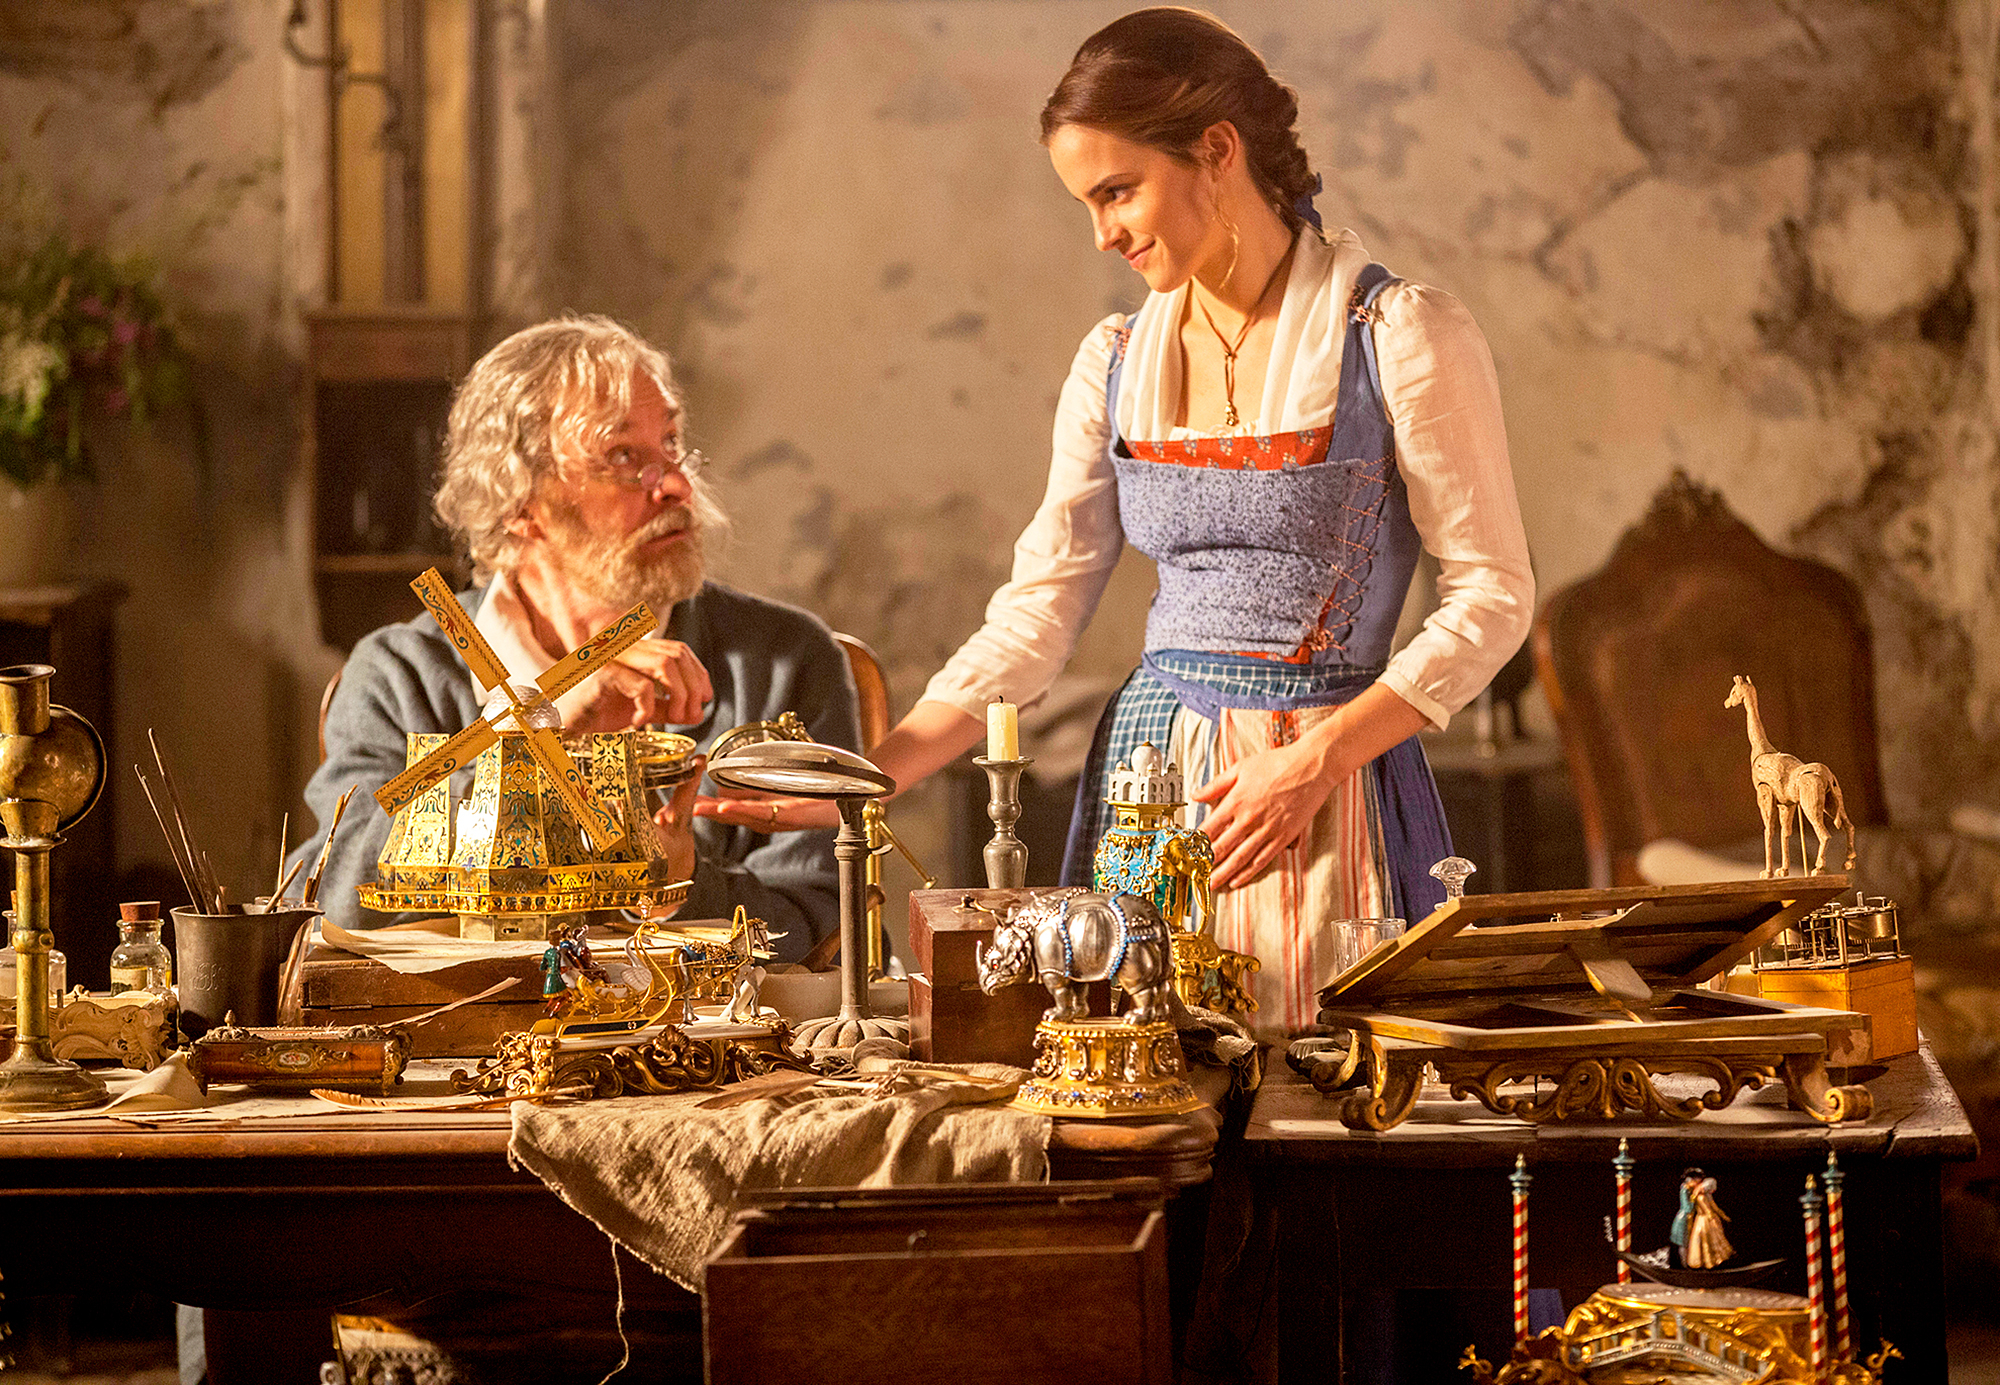 Kevin Kline and Emma Watson Beauty and the Beast